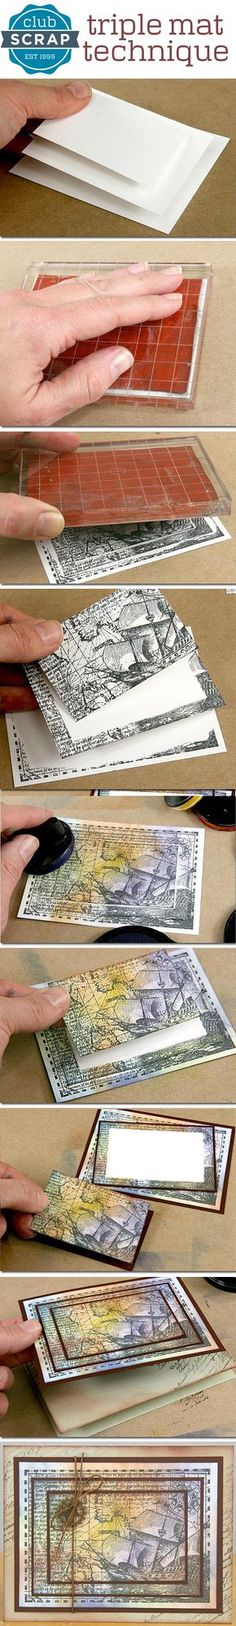 photo tutorial: Triple Mat Technique ...Quick and easy way to add interest and dimension to handmade greeting cards ... from Club Scrap ...